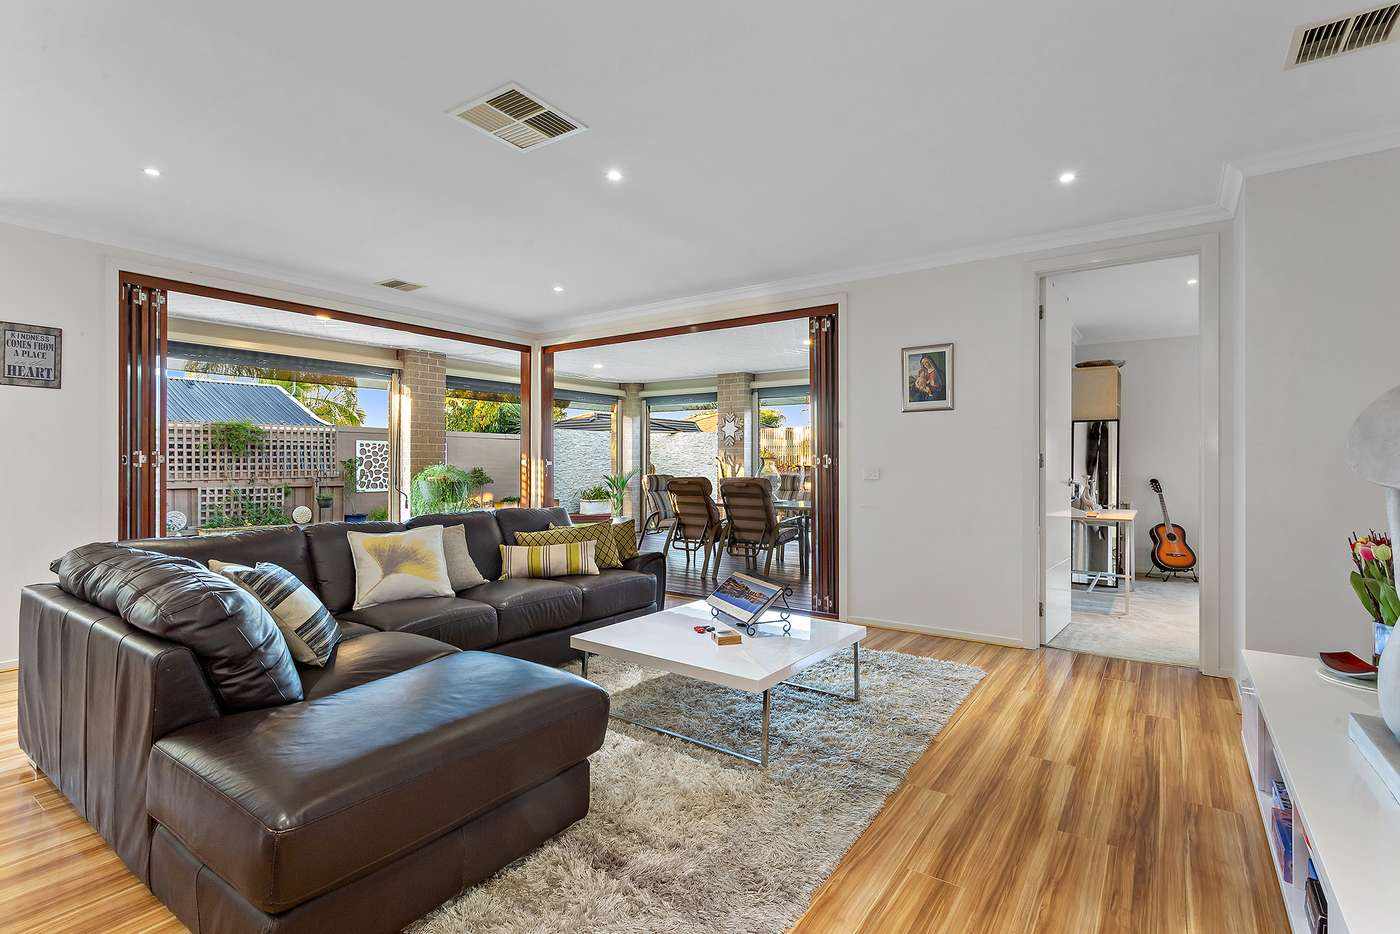 Sixth view of Homely house listing, 20 Durward Road, Malvern East VIC 3145